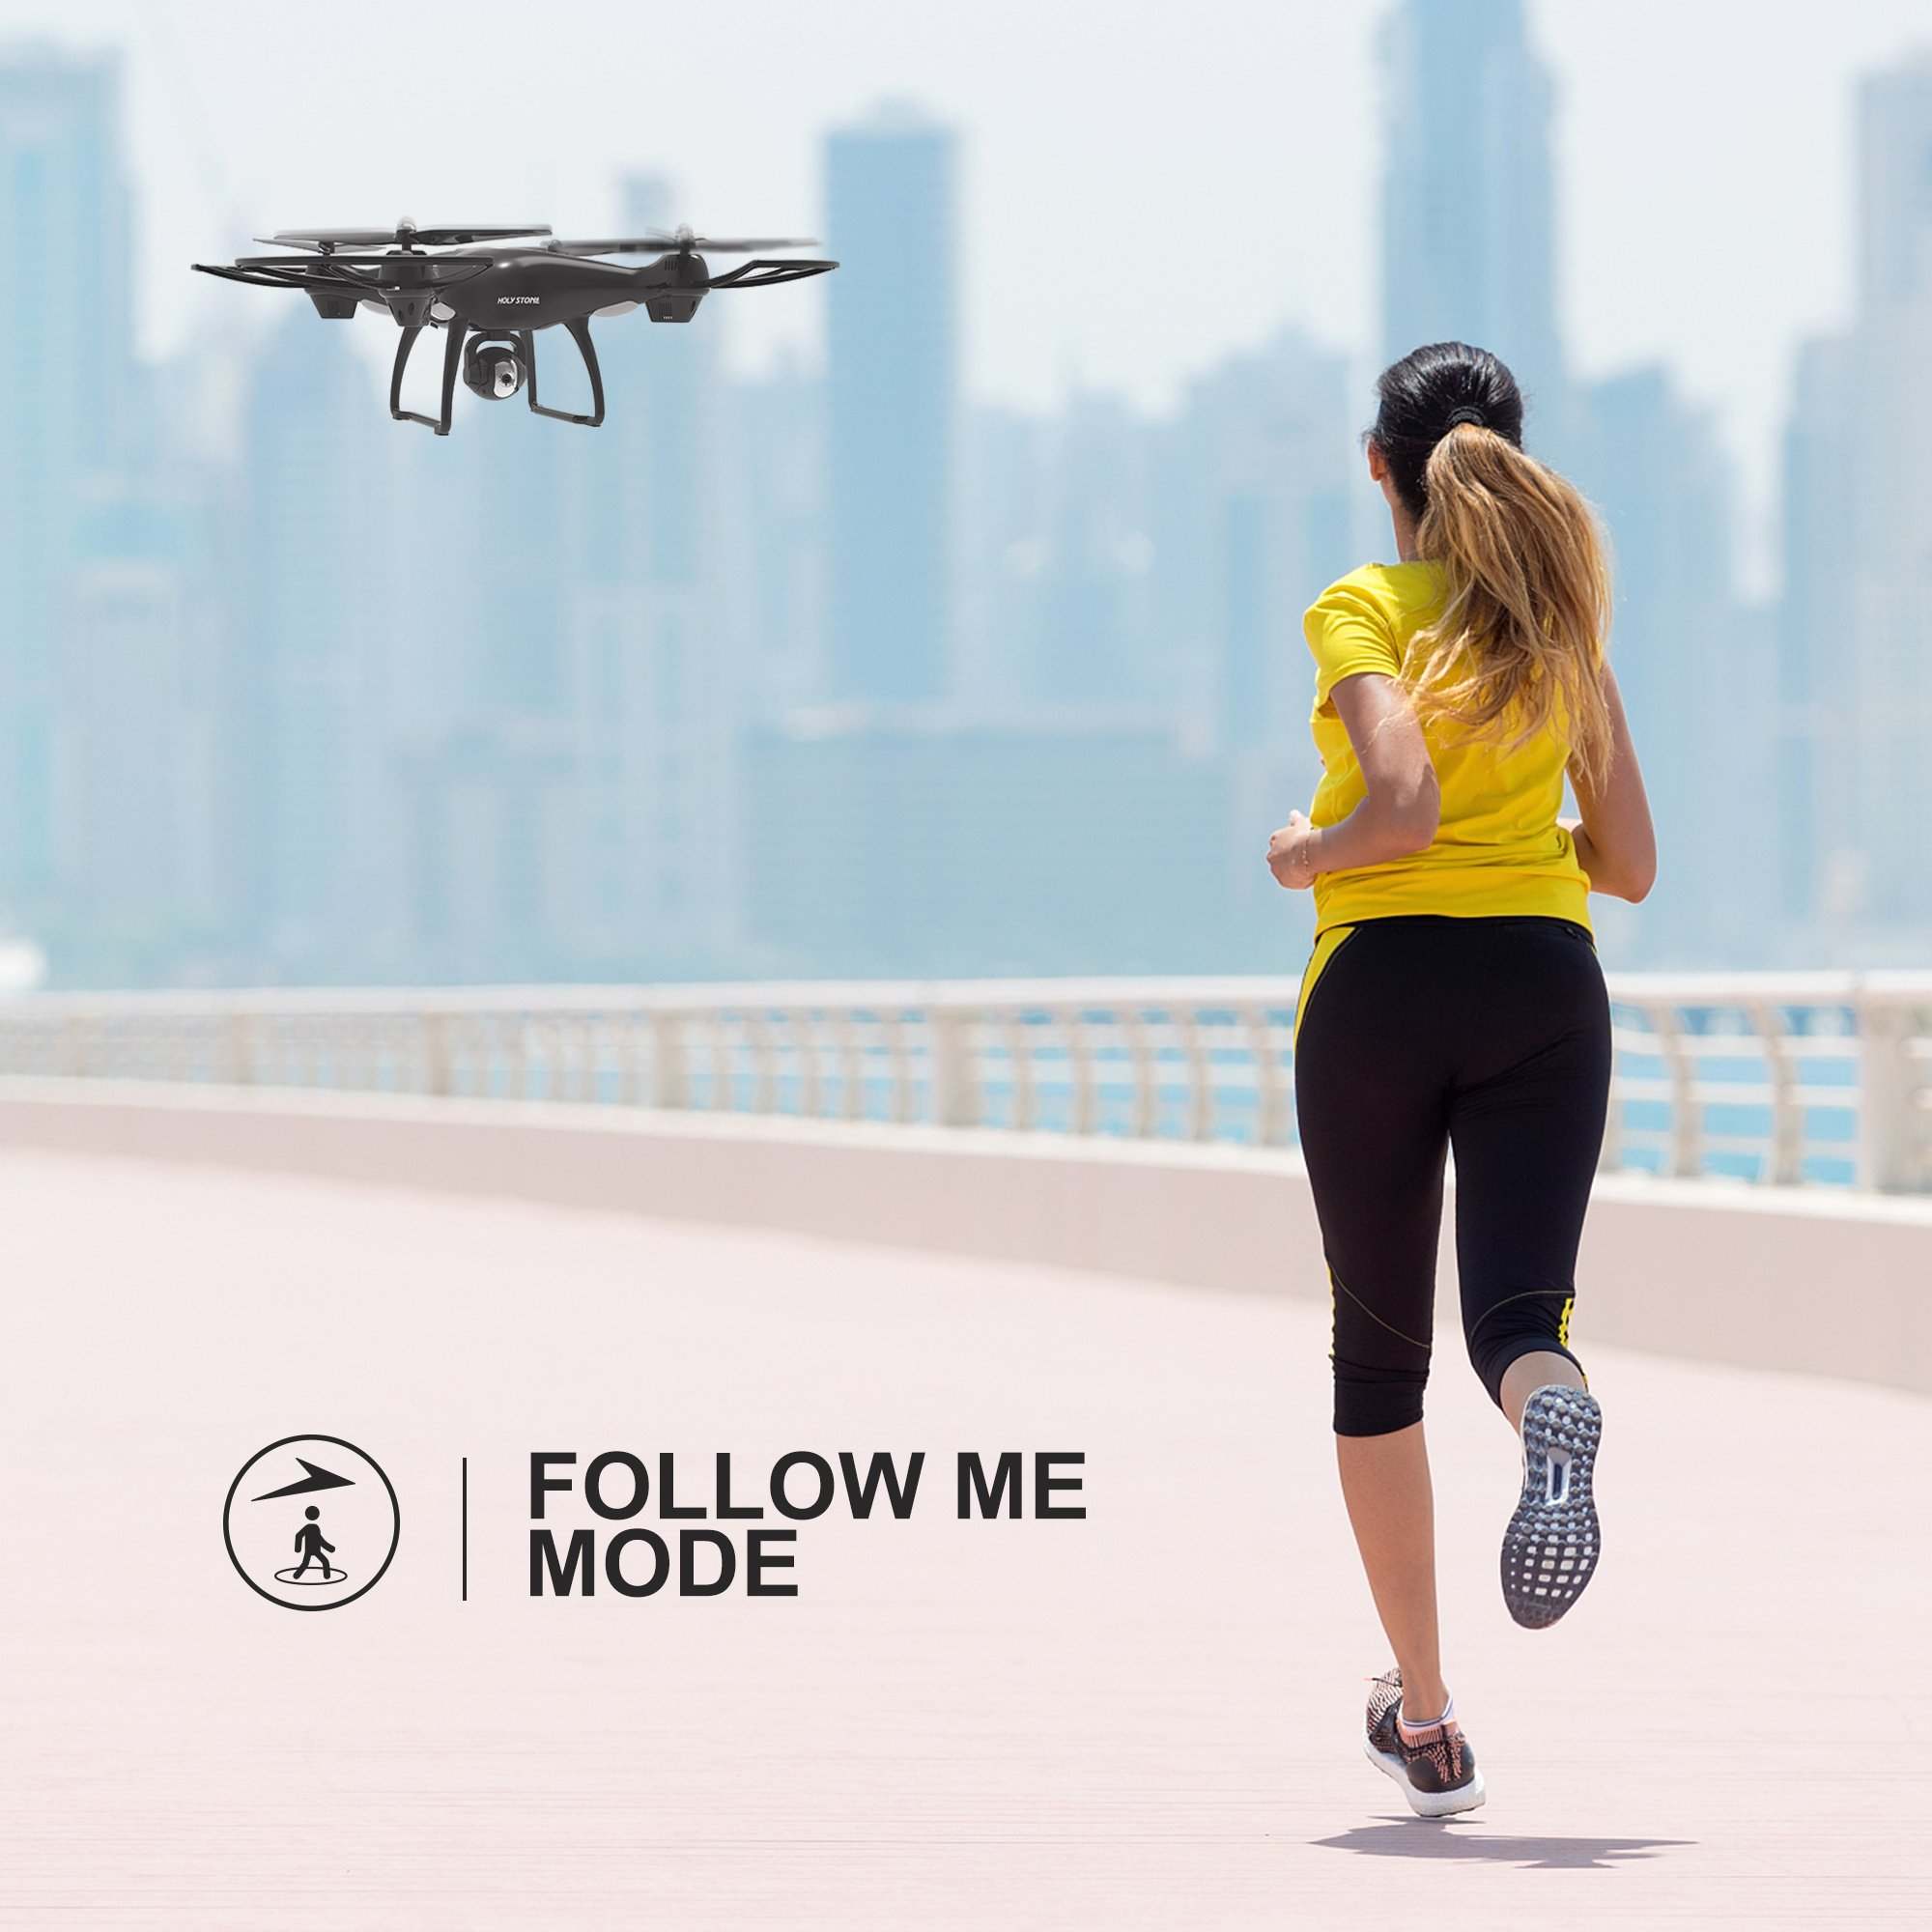 Holy Stone HS100 FPV RC Drone with Camera Live Video and GPS Return Home Quadcopter with Adjustable Wide-Angle 720P HD WIFI Camera- Follow Me, Altitude Hold, Intelligent Battery, Long Control Distance by Holy Stone (Image #2)